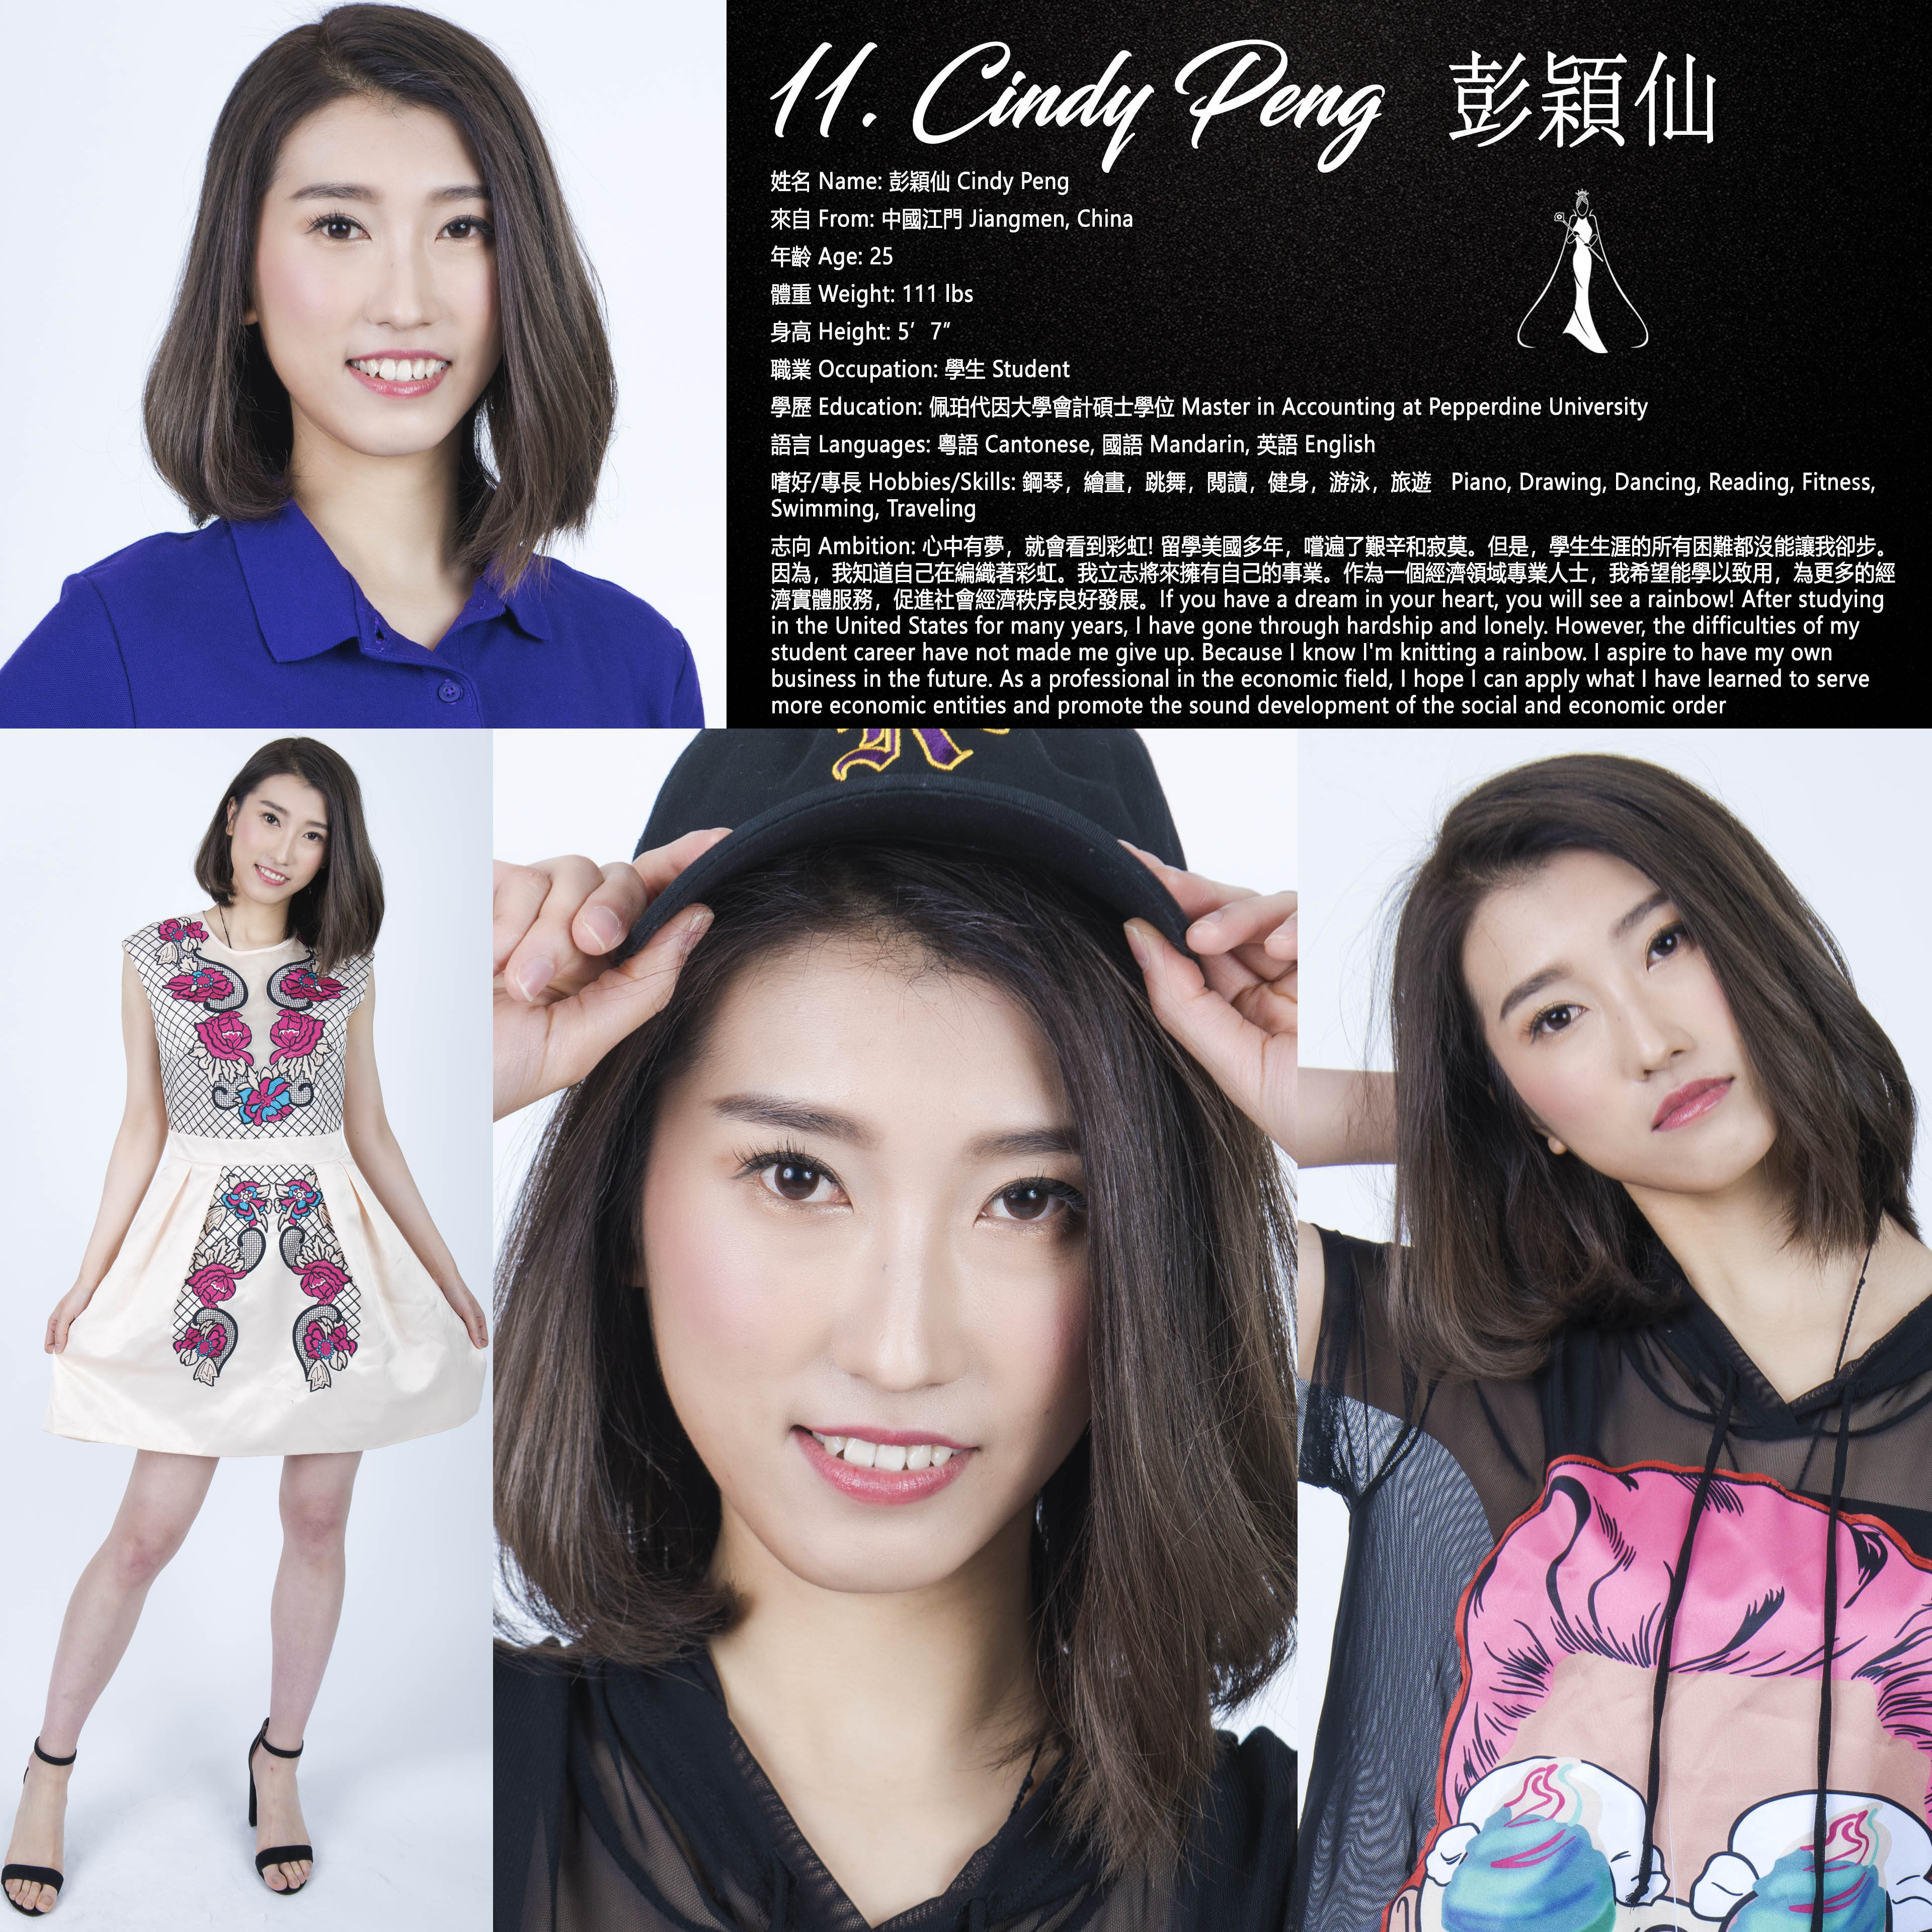 MCBP2018 Finalists No.11 Cindy Peng